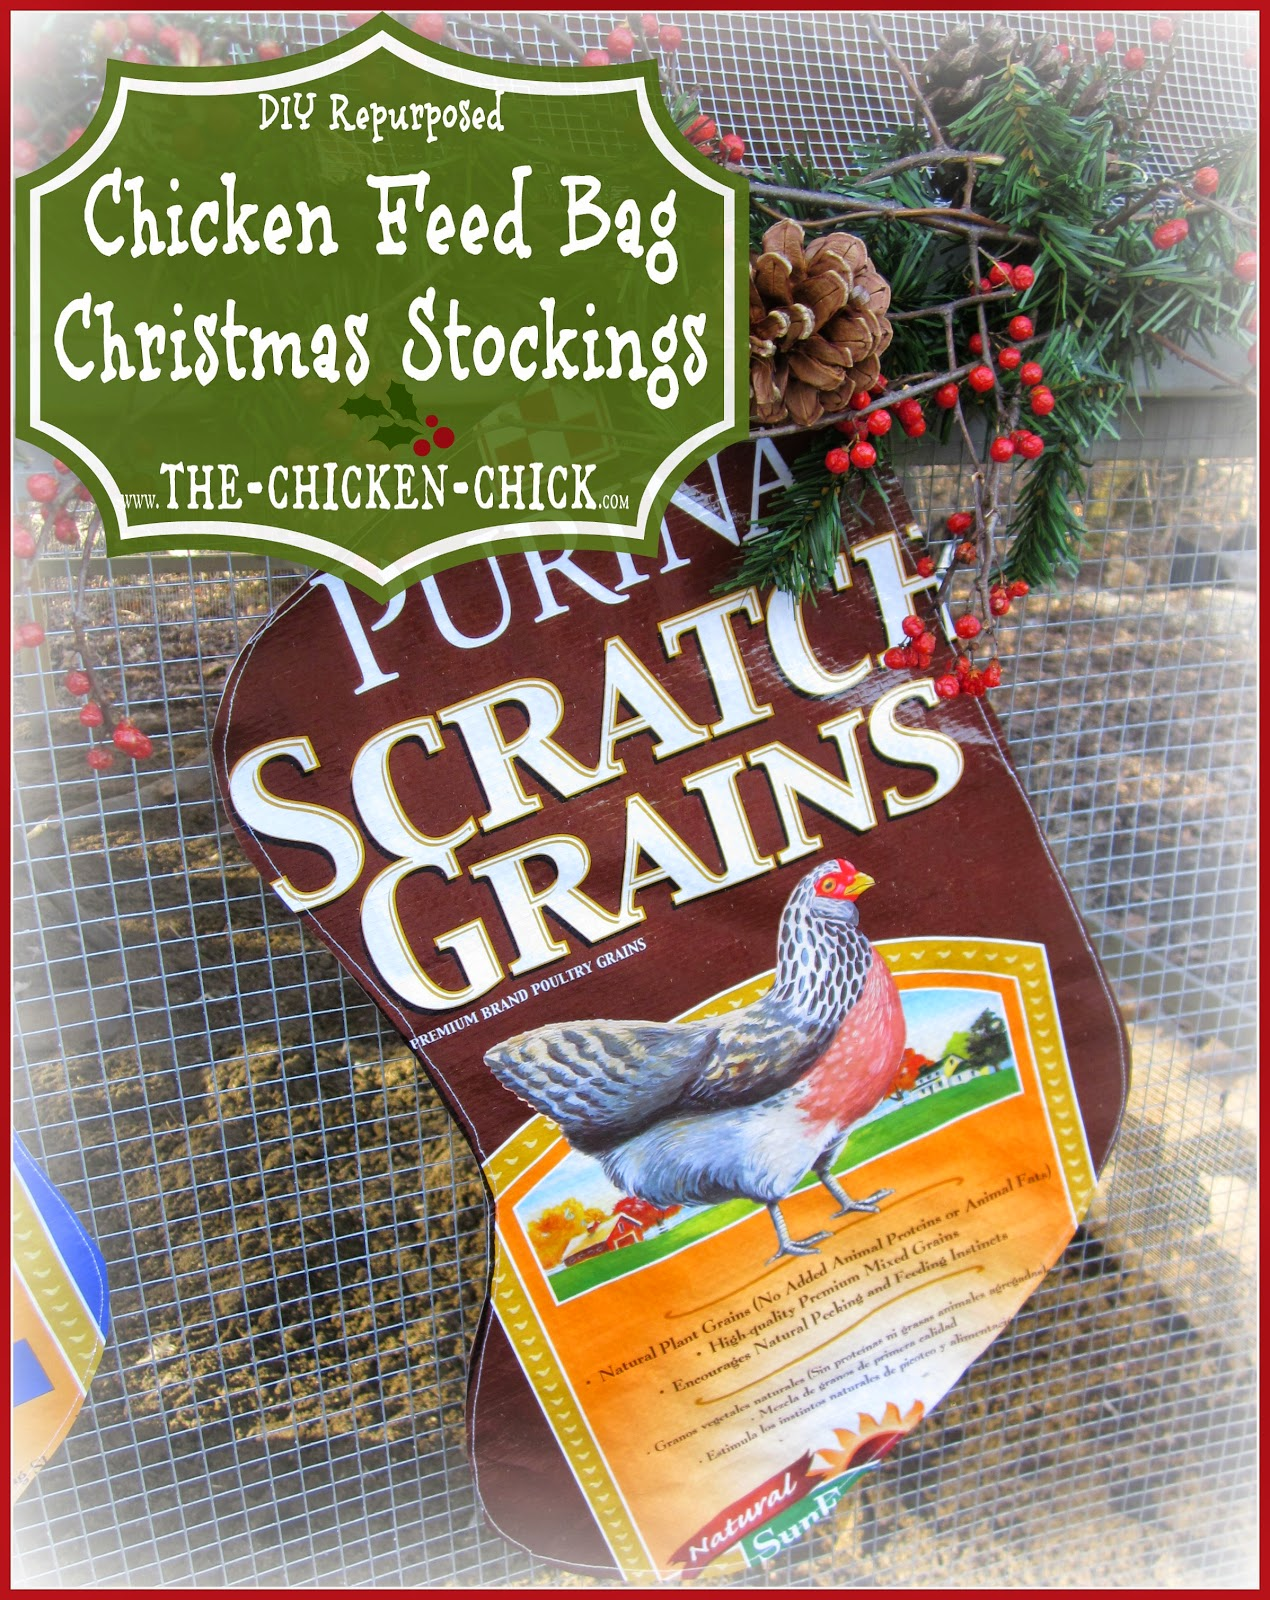 Repurposed Chicken Feed Bag Christmas Stockings tutorial